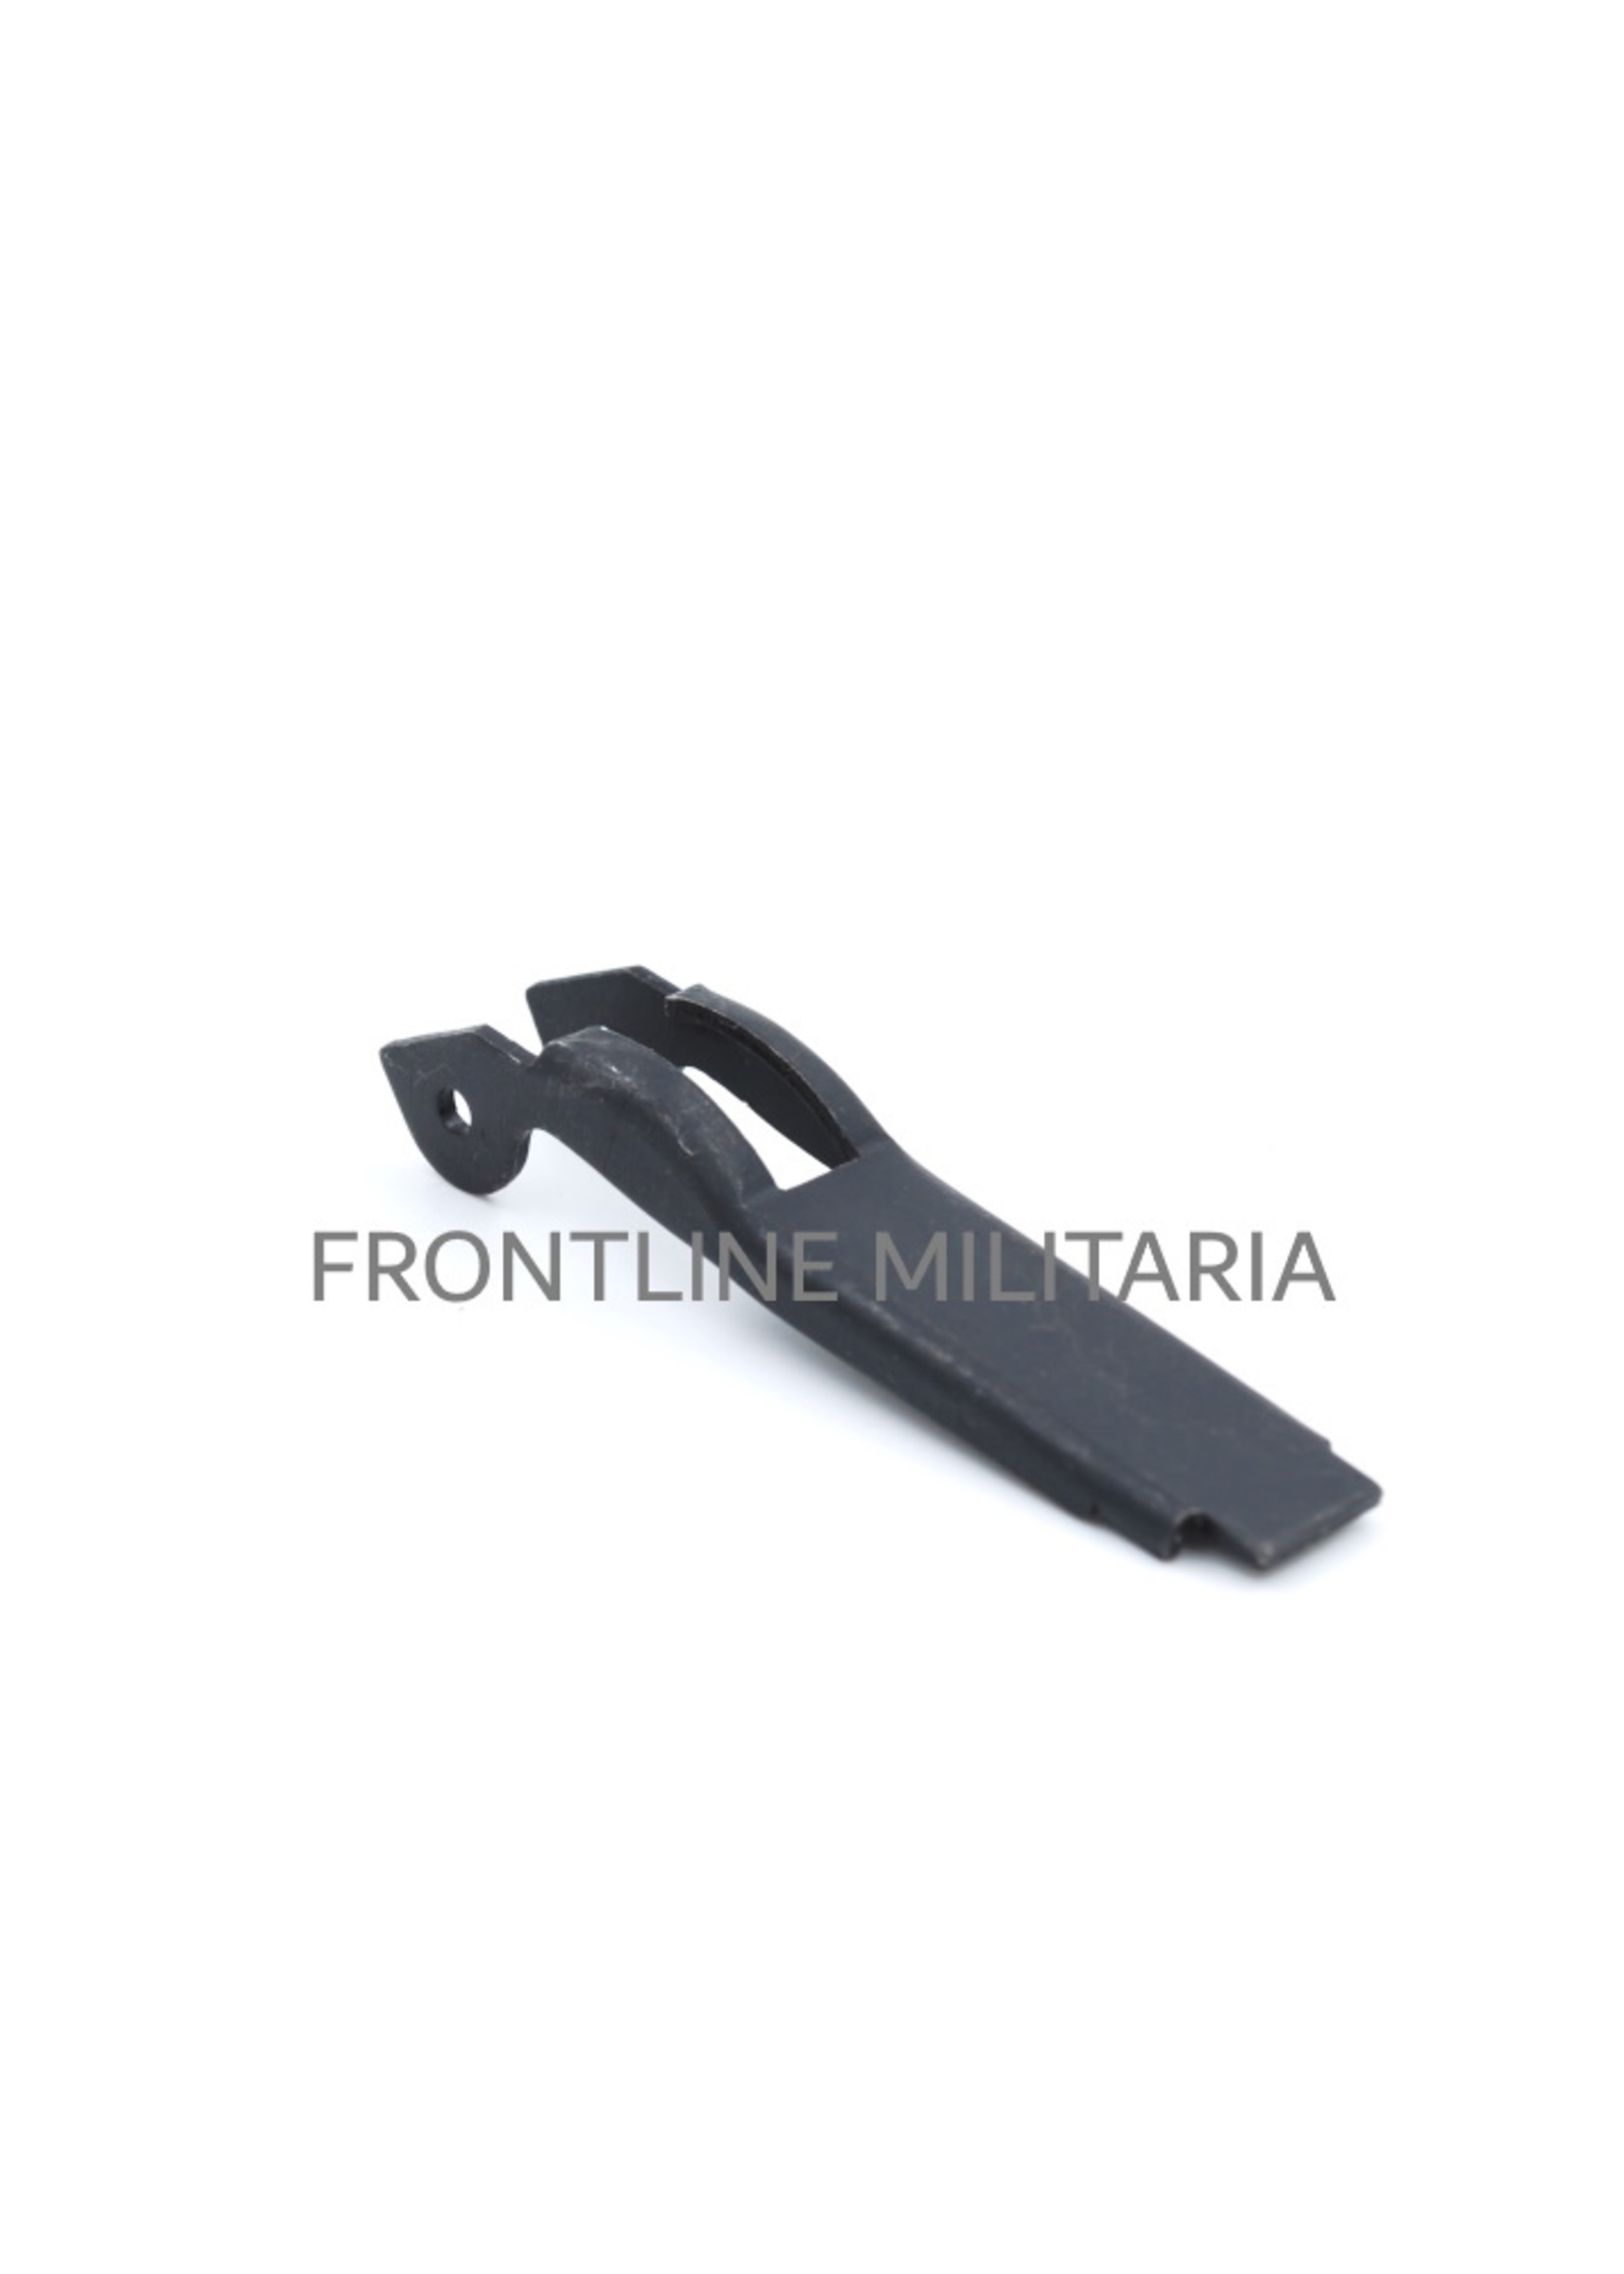 Rear sight ramp for the G43 and K43 Rifle